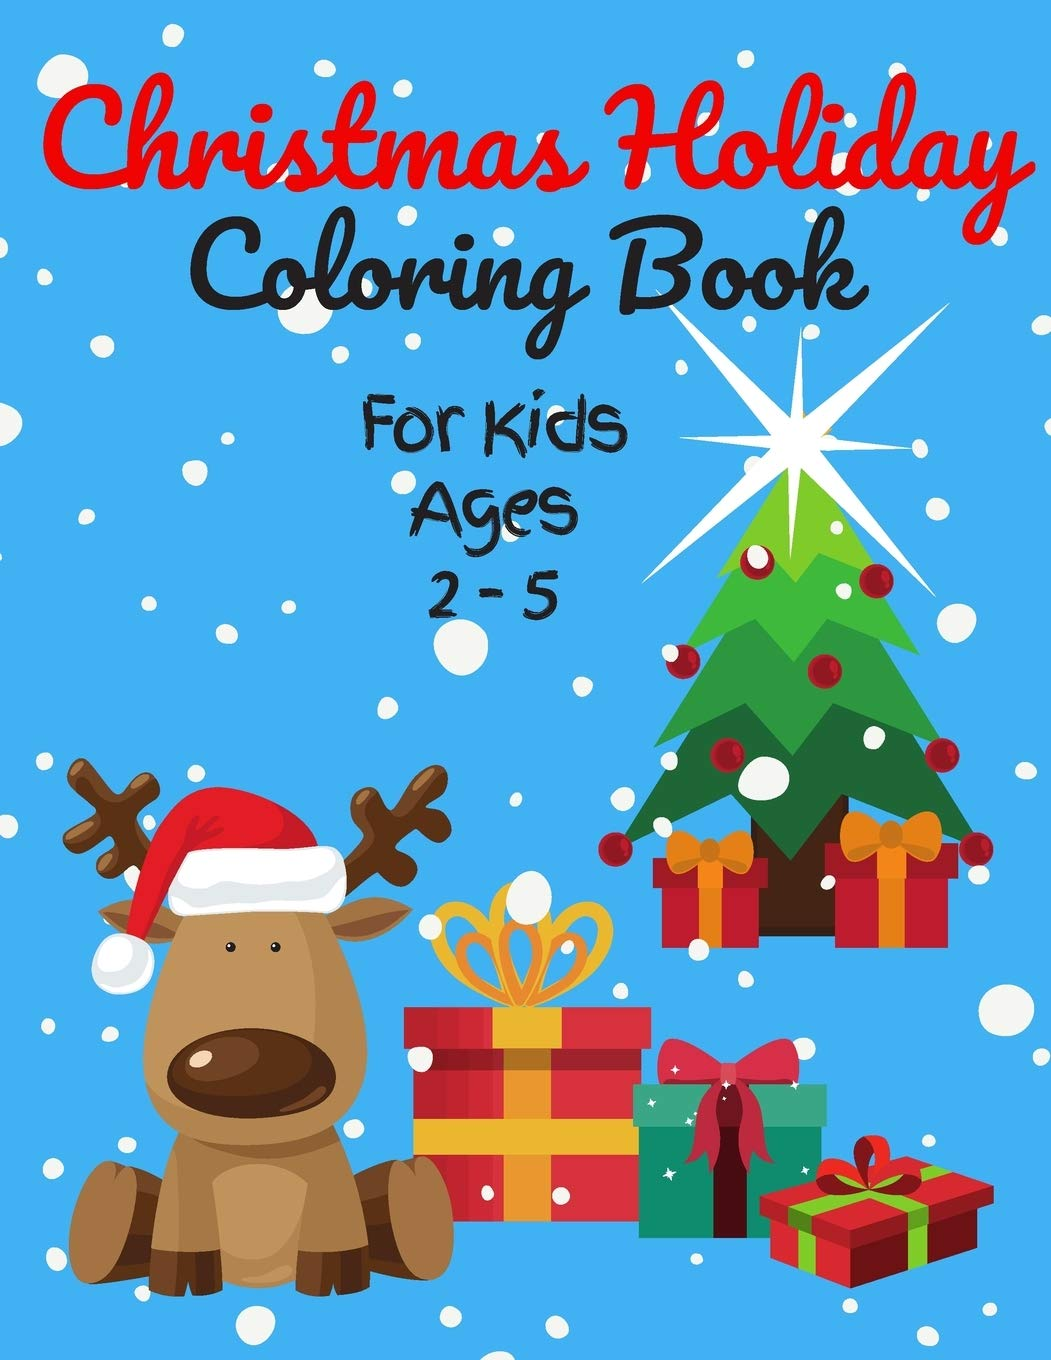 Christmas Holiday Coloring Book For Kids Ages 2 5 50 Christmas Coloring Pages For Toddlers Preschool Children Cute Images Of Santa Claus Christmas 2020 Sweet Cuddly Gift Idea Brain Fresh 9798551655206 Amazon Com Books